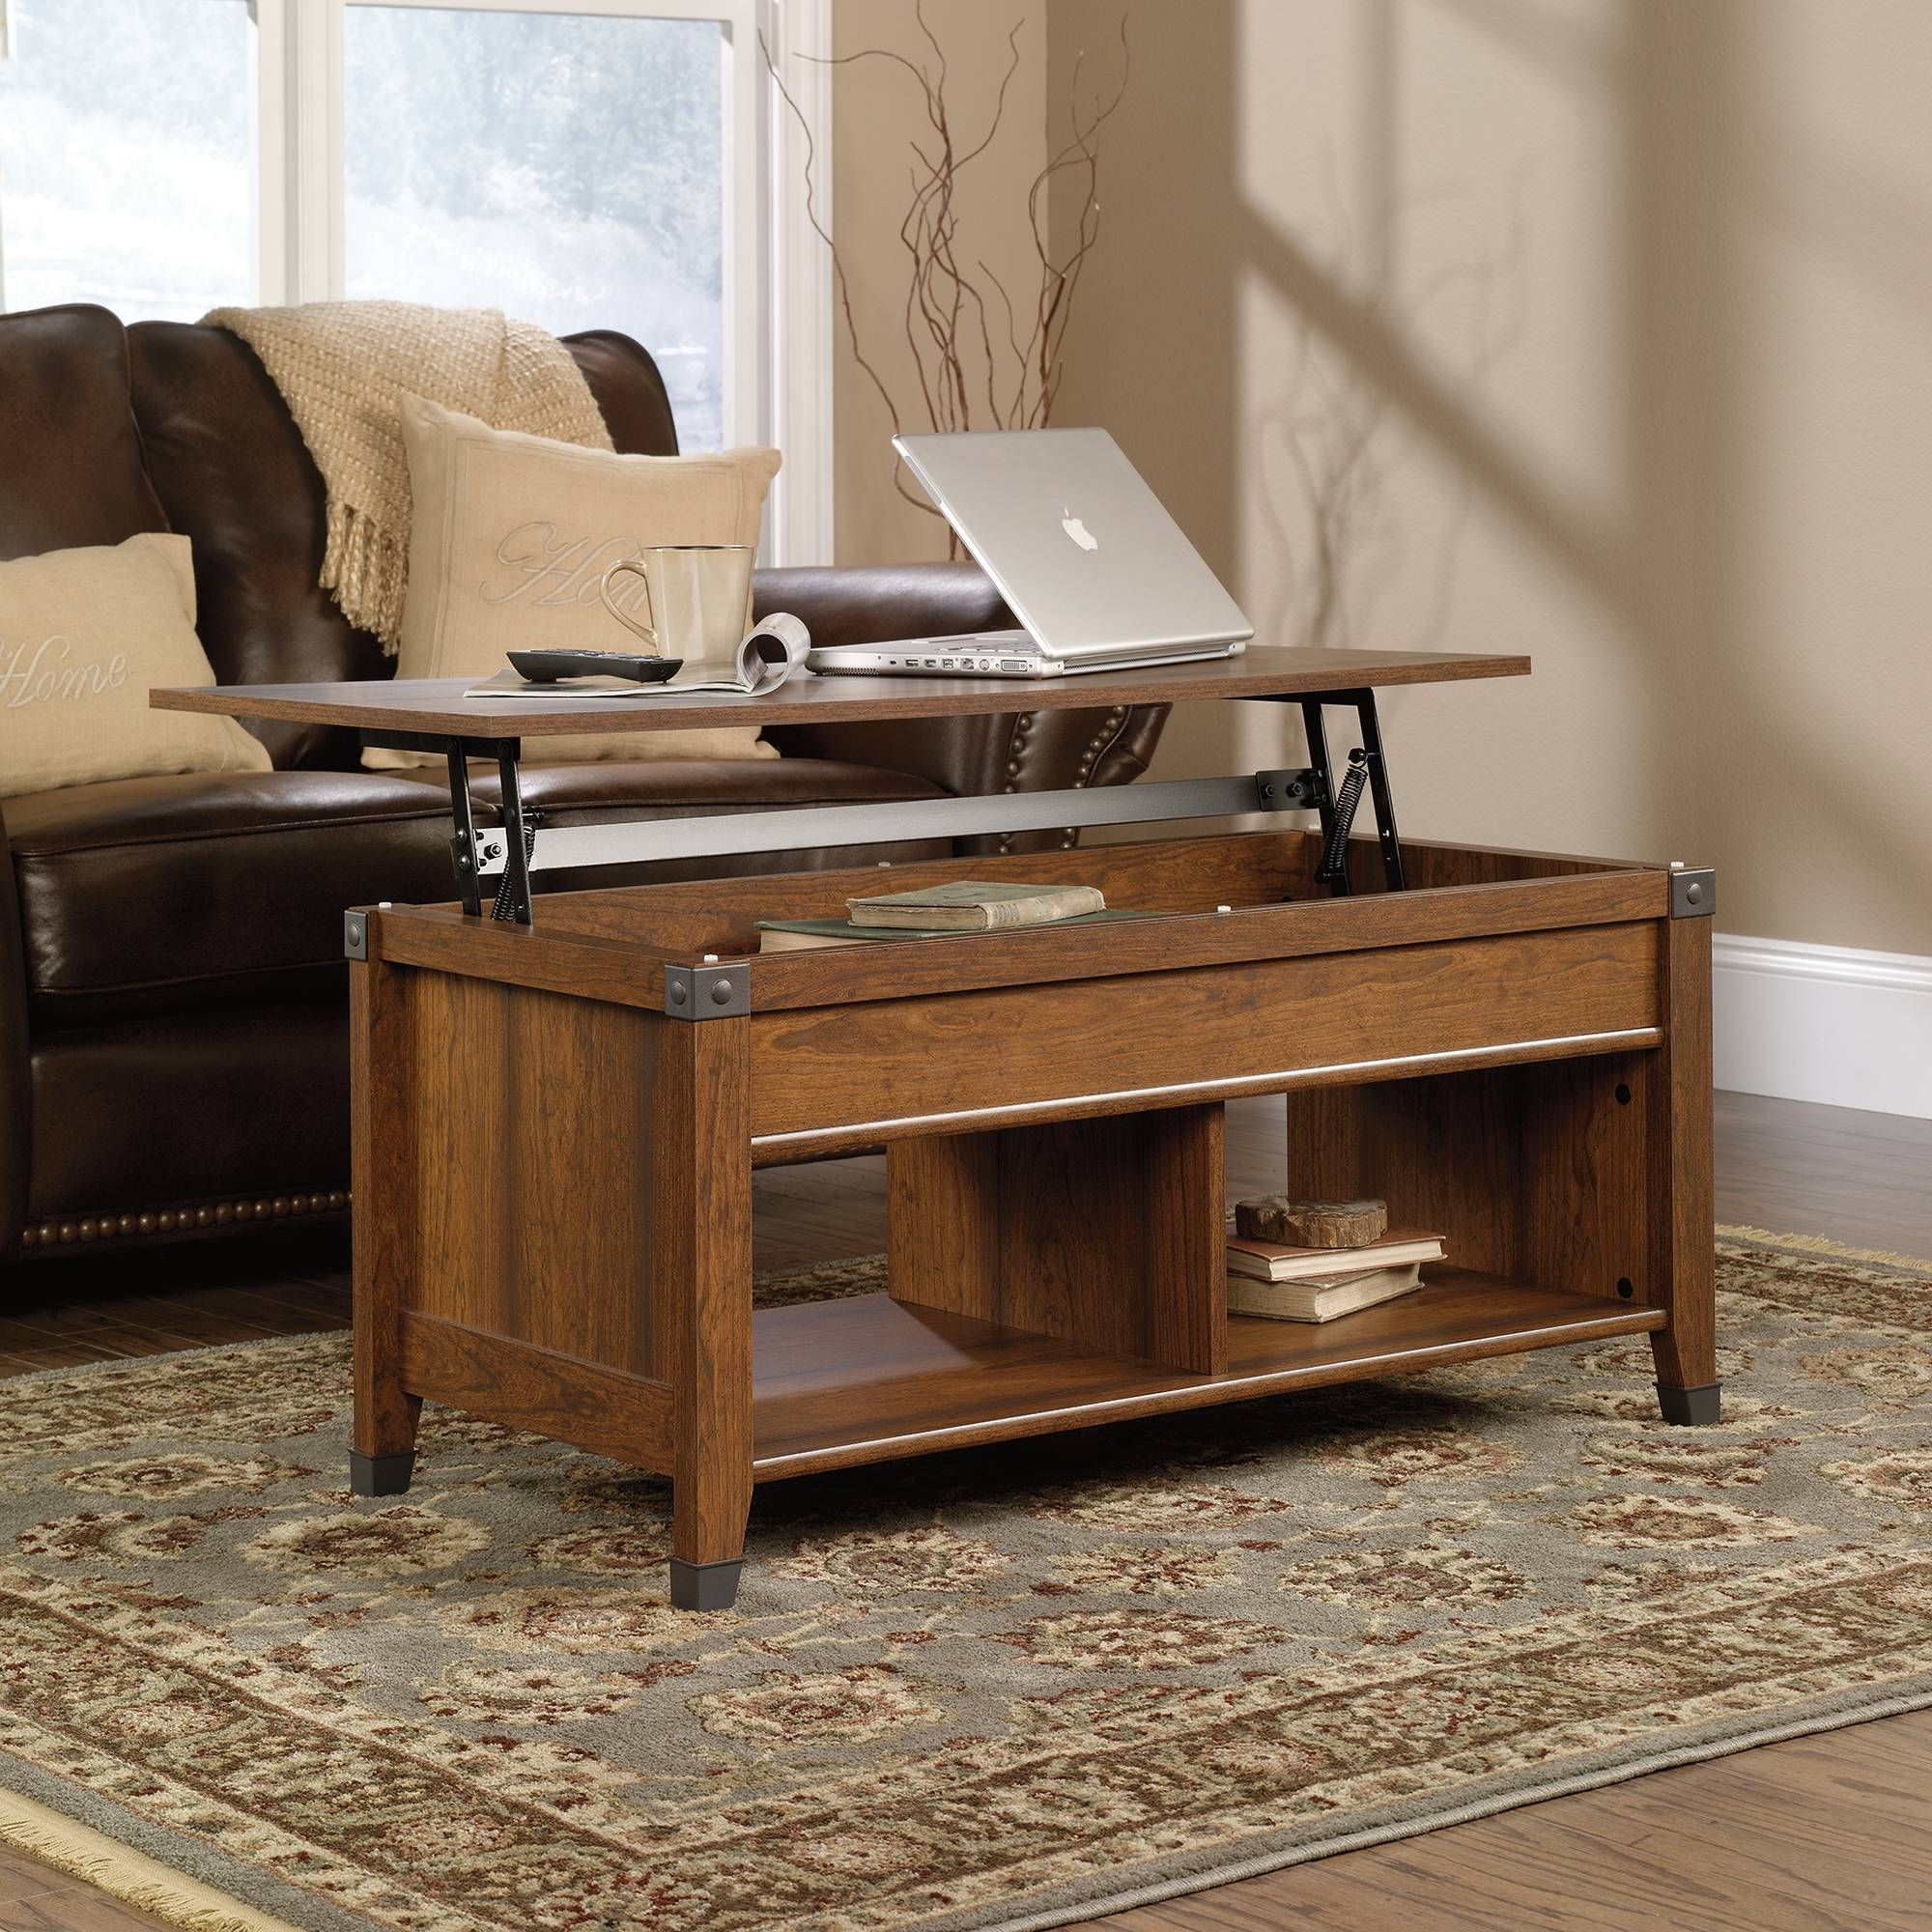 Carson Forge | Lift-Top Coffee Table | 414444 | Sauder with regard to Lift Top Coffee Tables (Image 2 of 30)